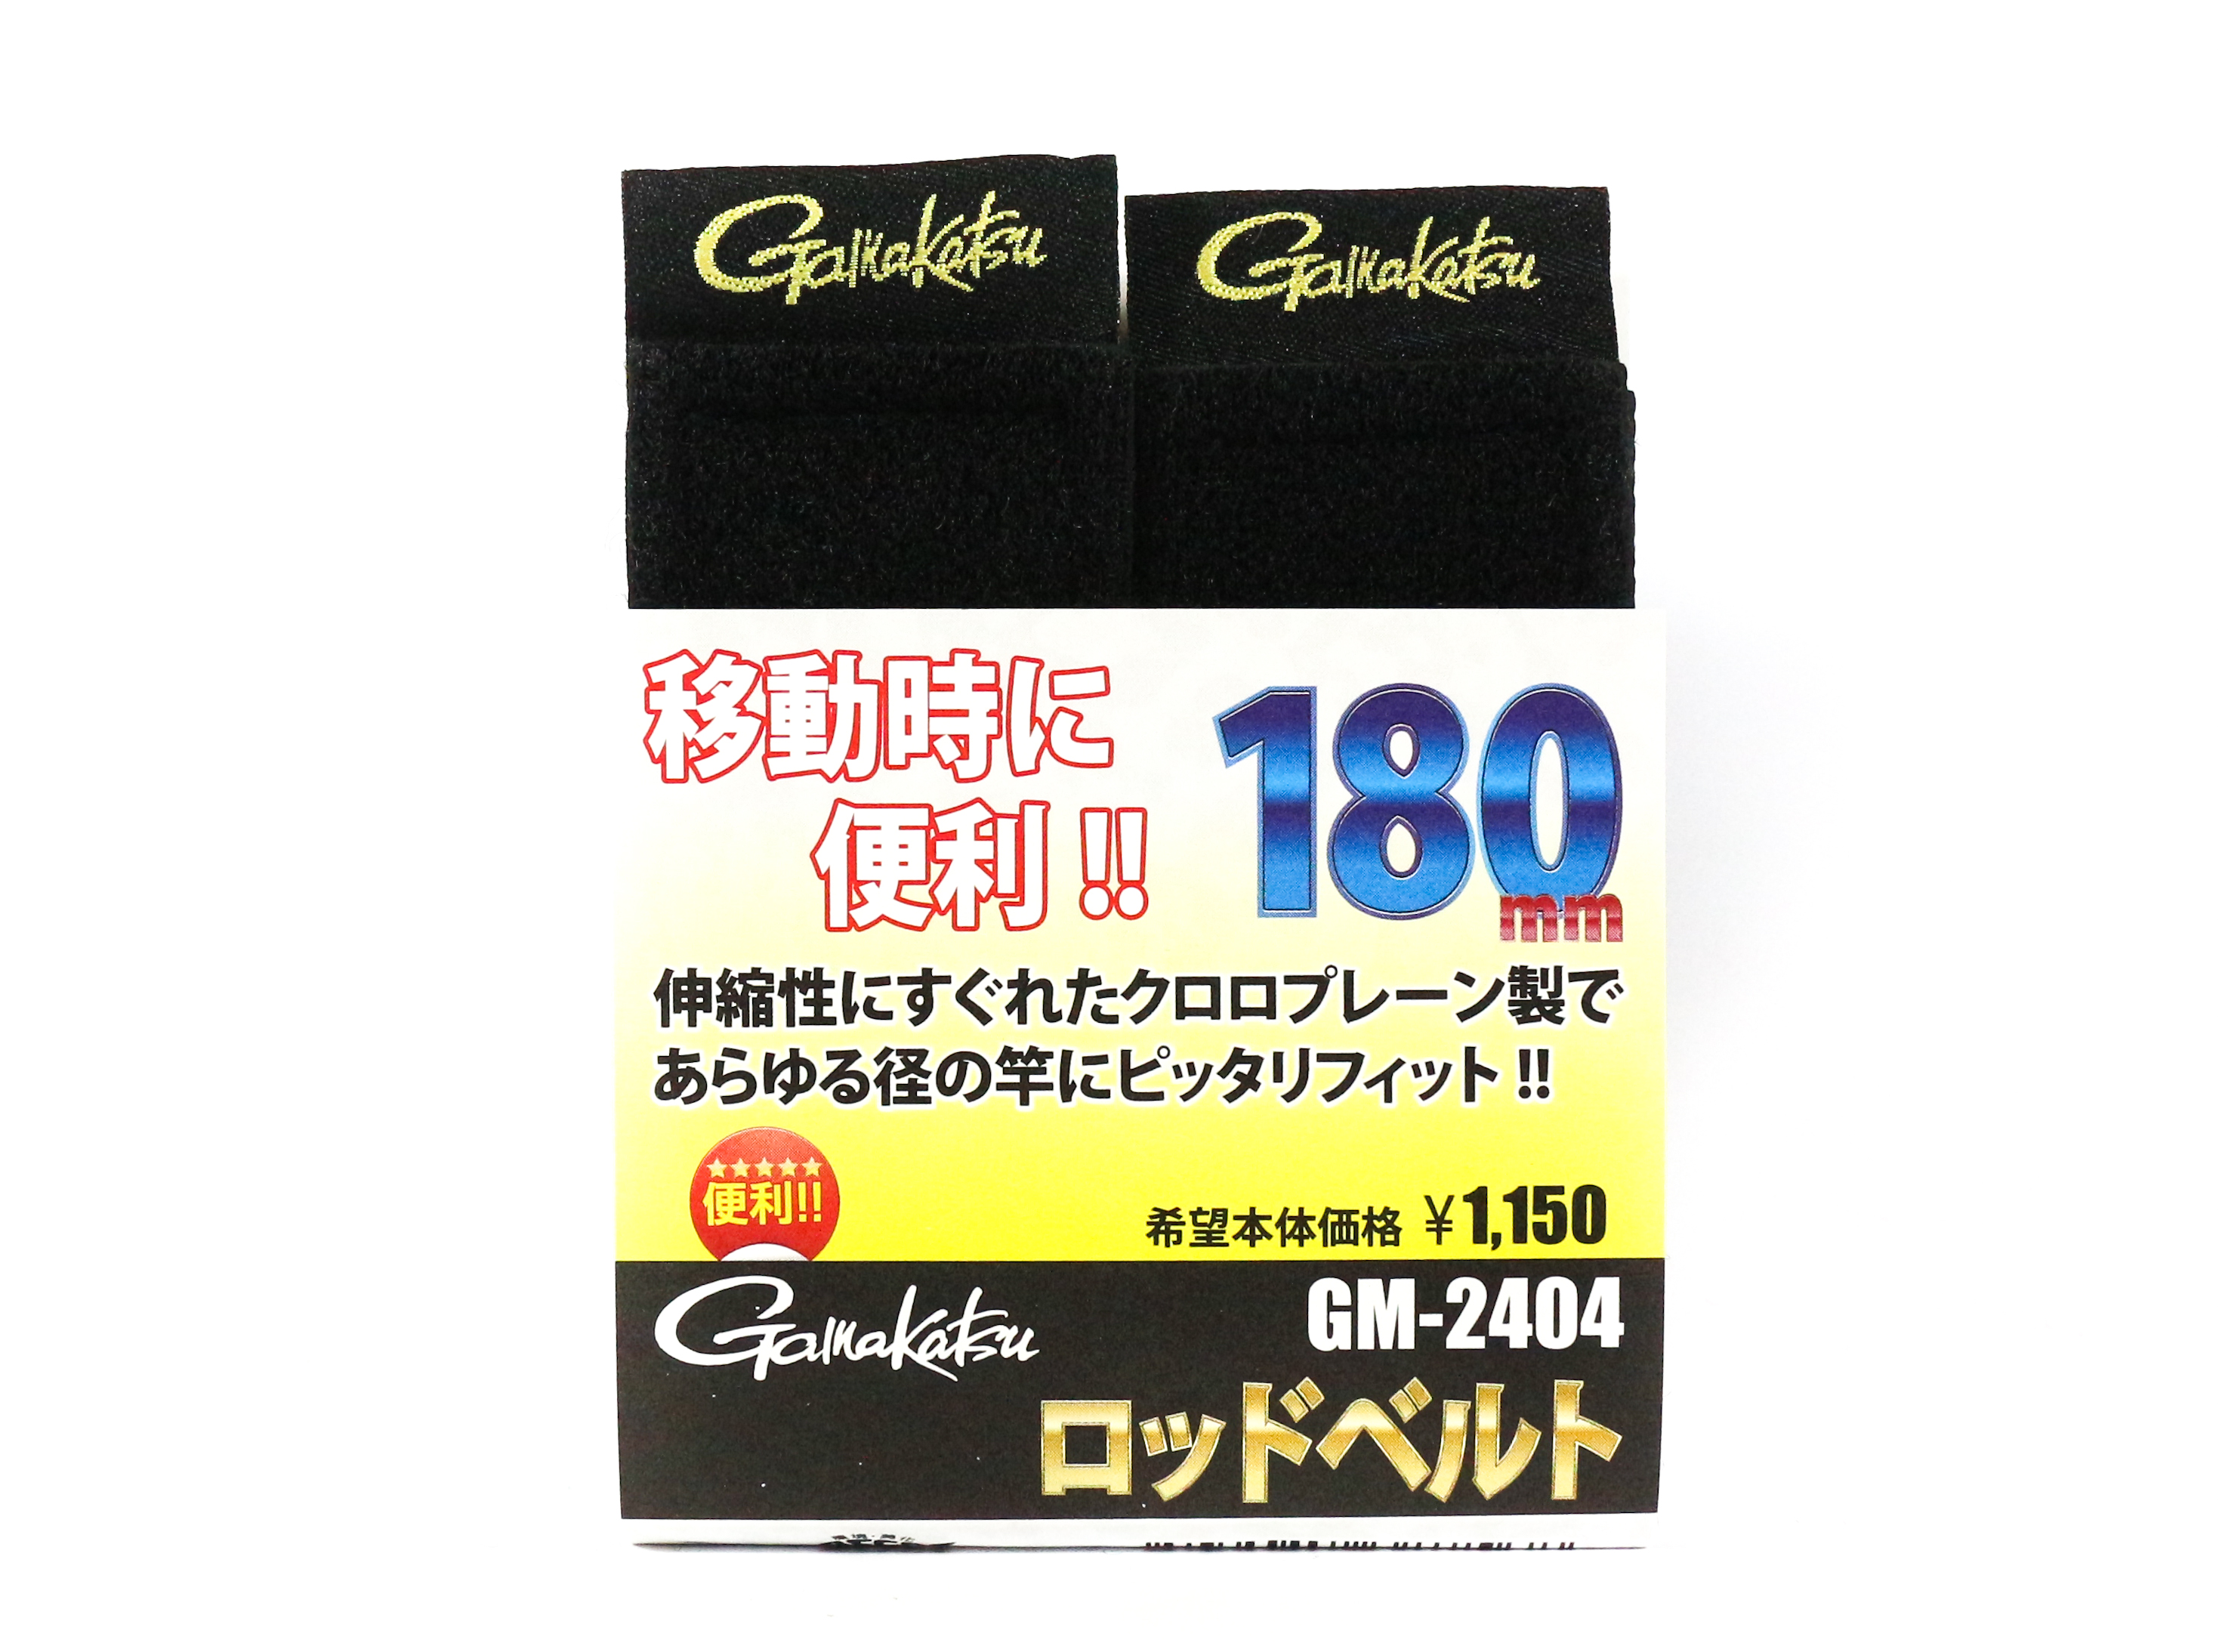 Gamakatsu GM-2404 Rod Belt Strap 2 Pieces 40 x 180 mm Black (7568)